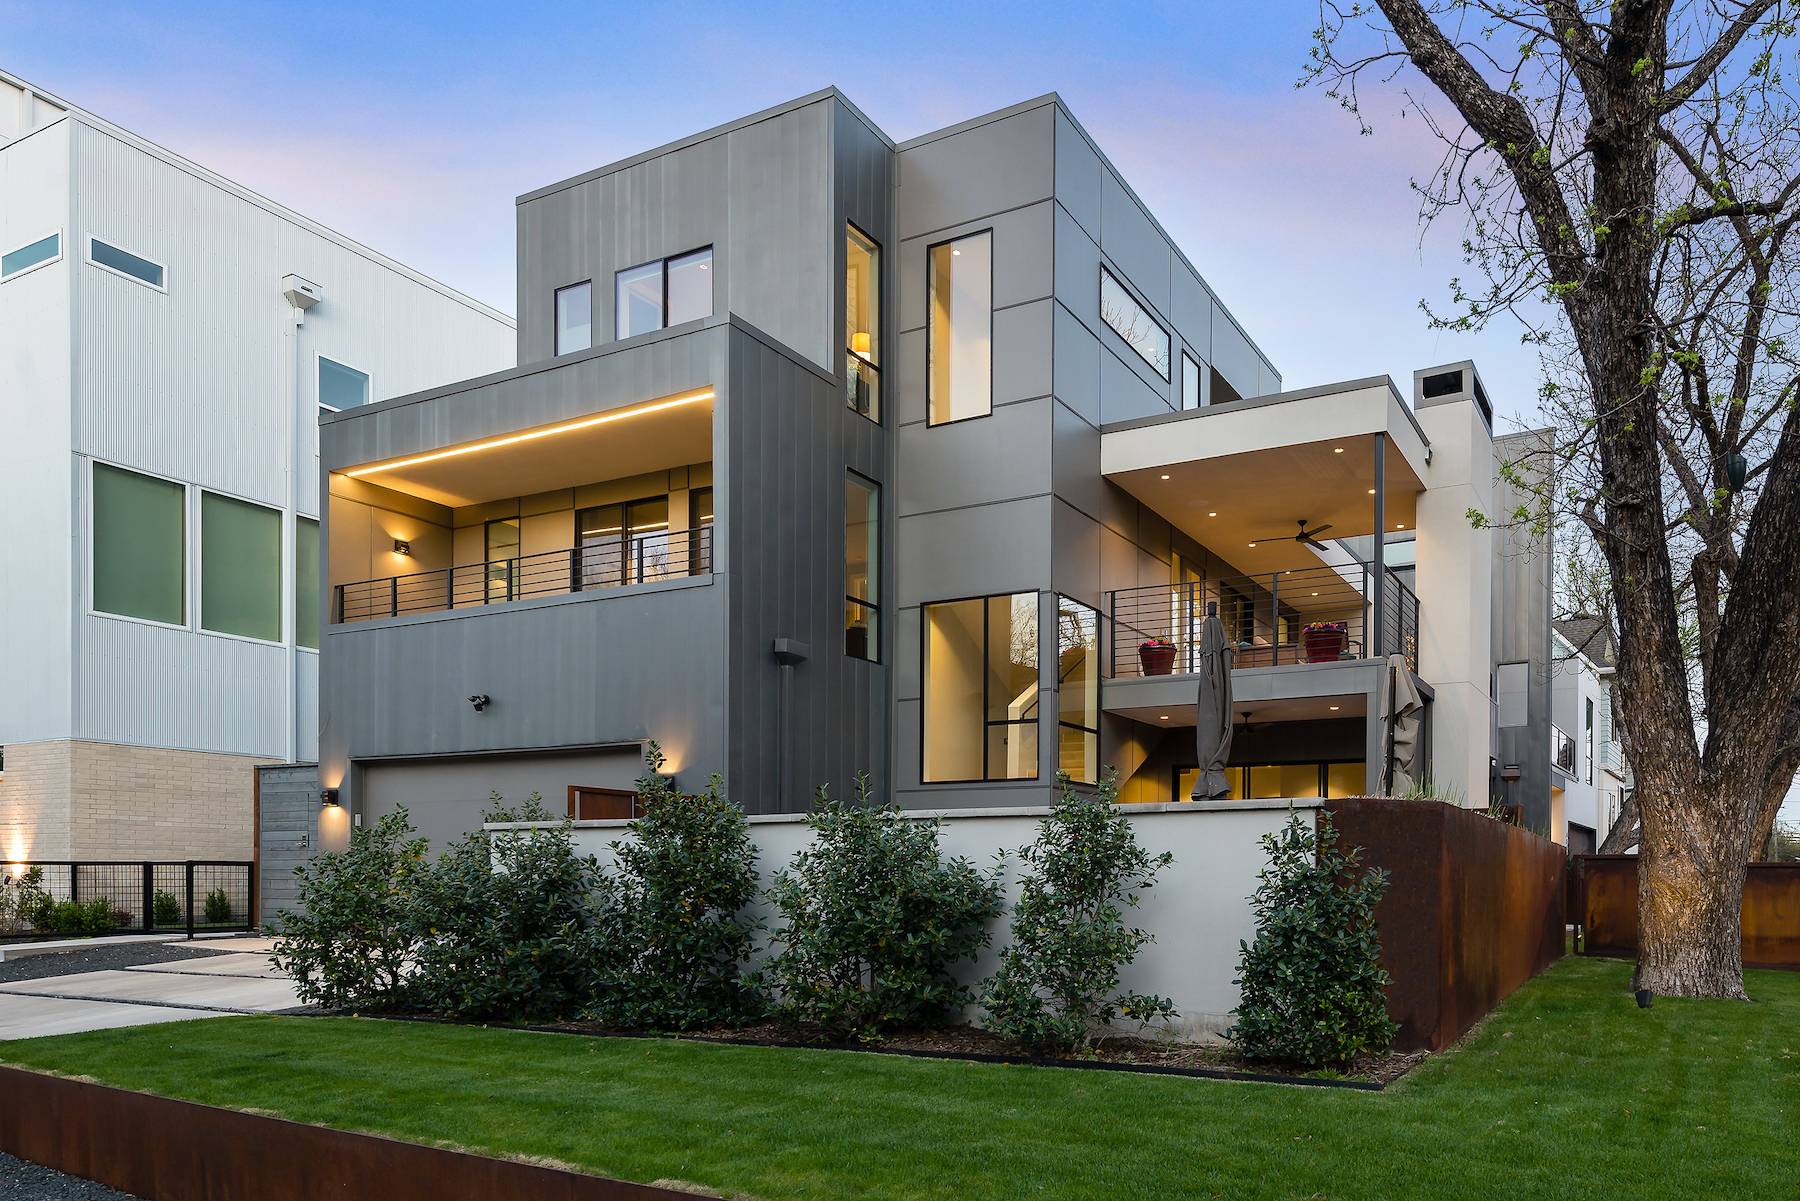 Stunning Standalone Near Downtown Dallas Is a Sight to Be Seen - D Magazine